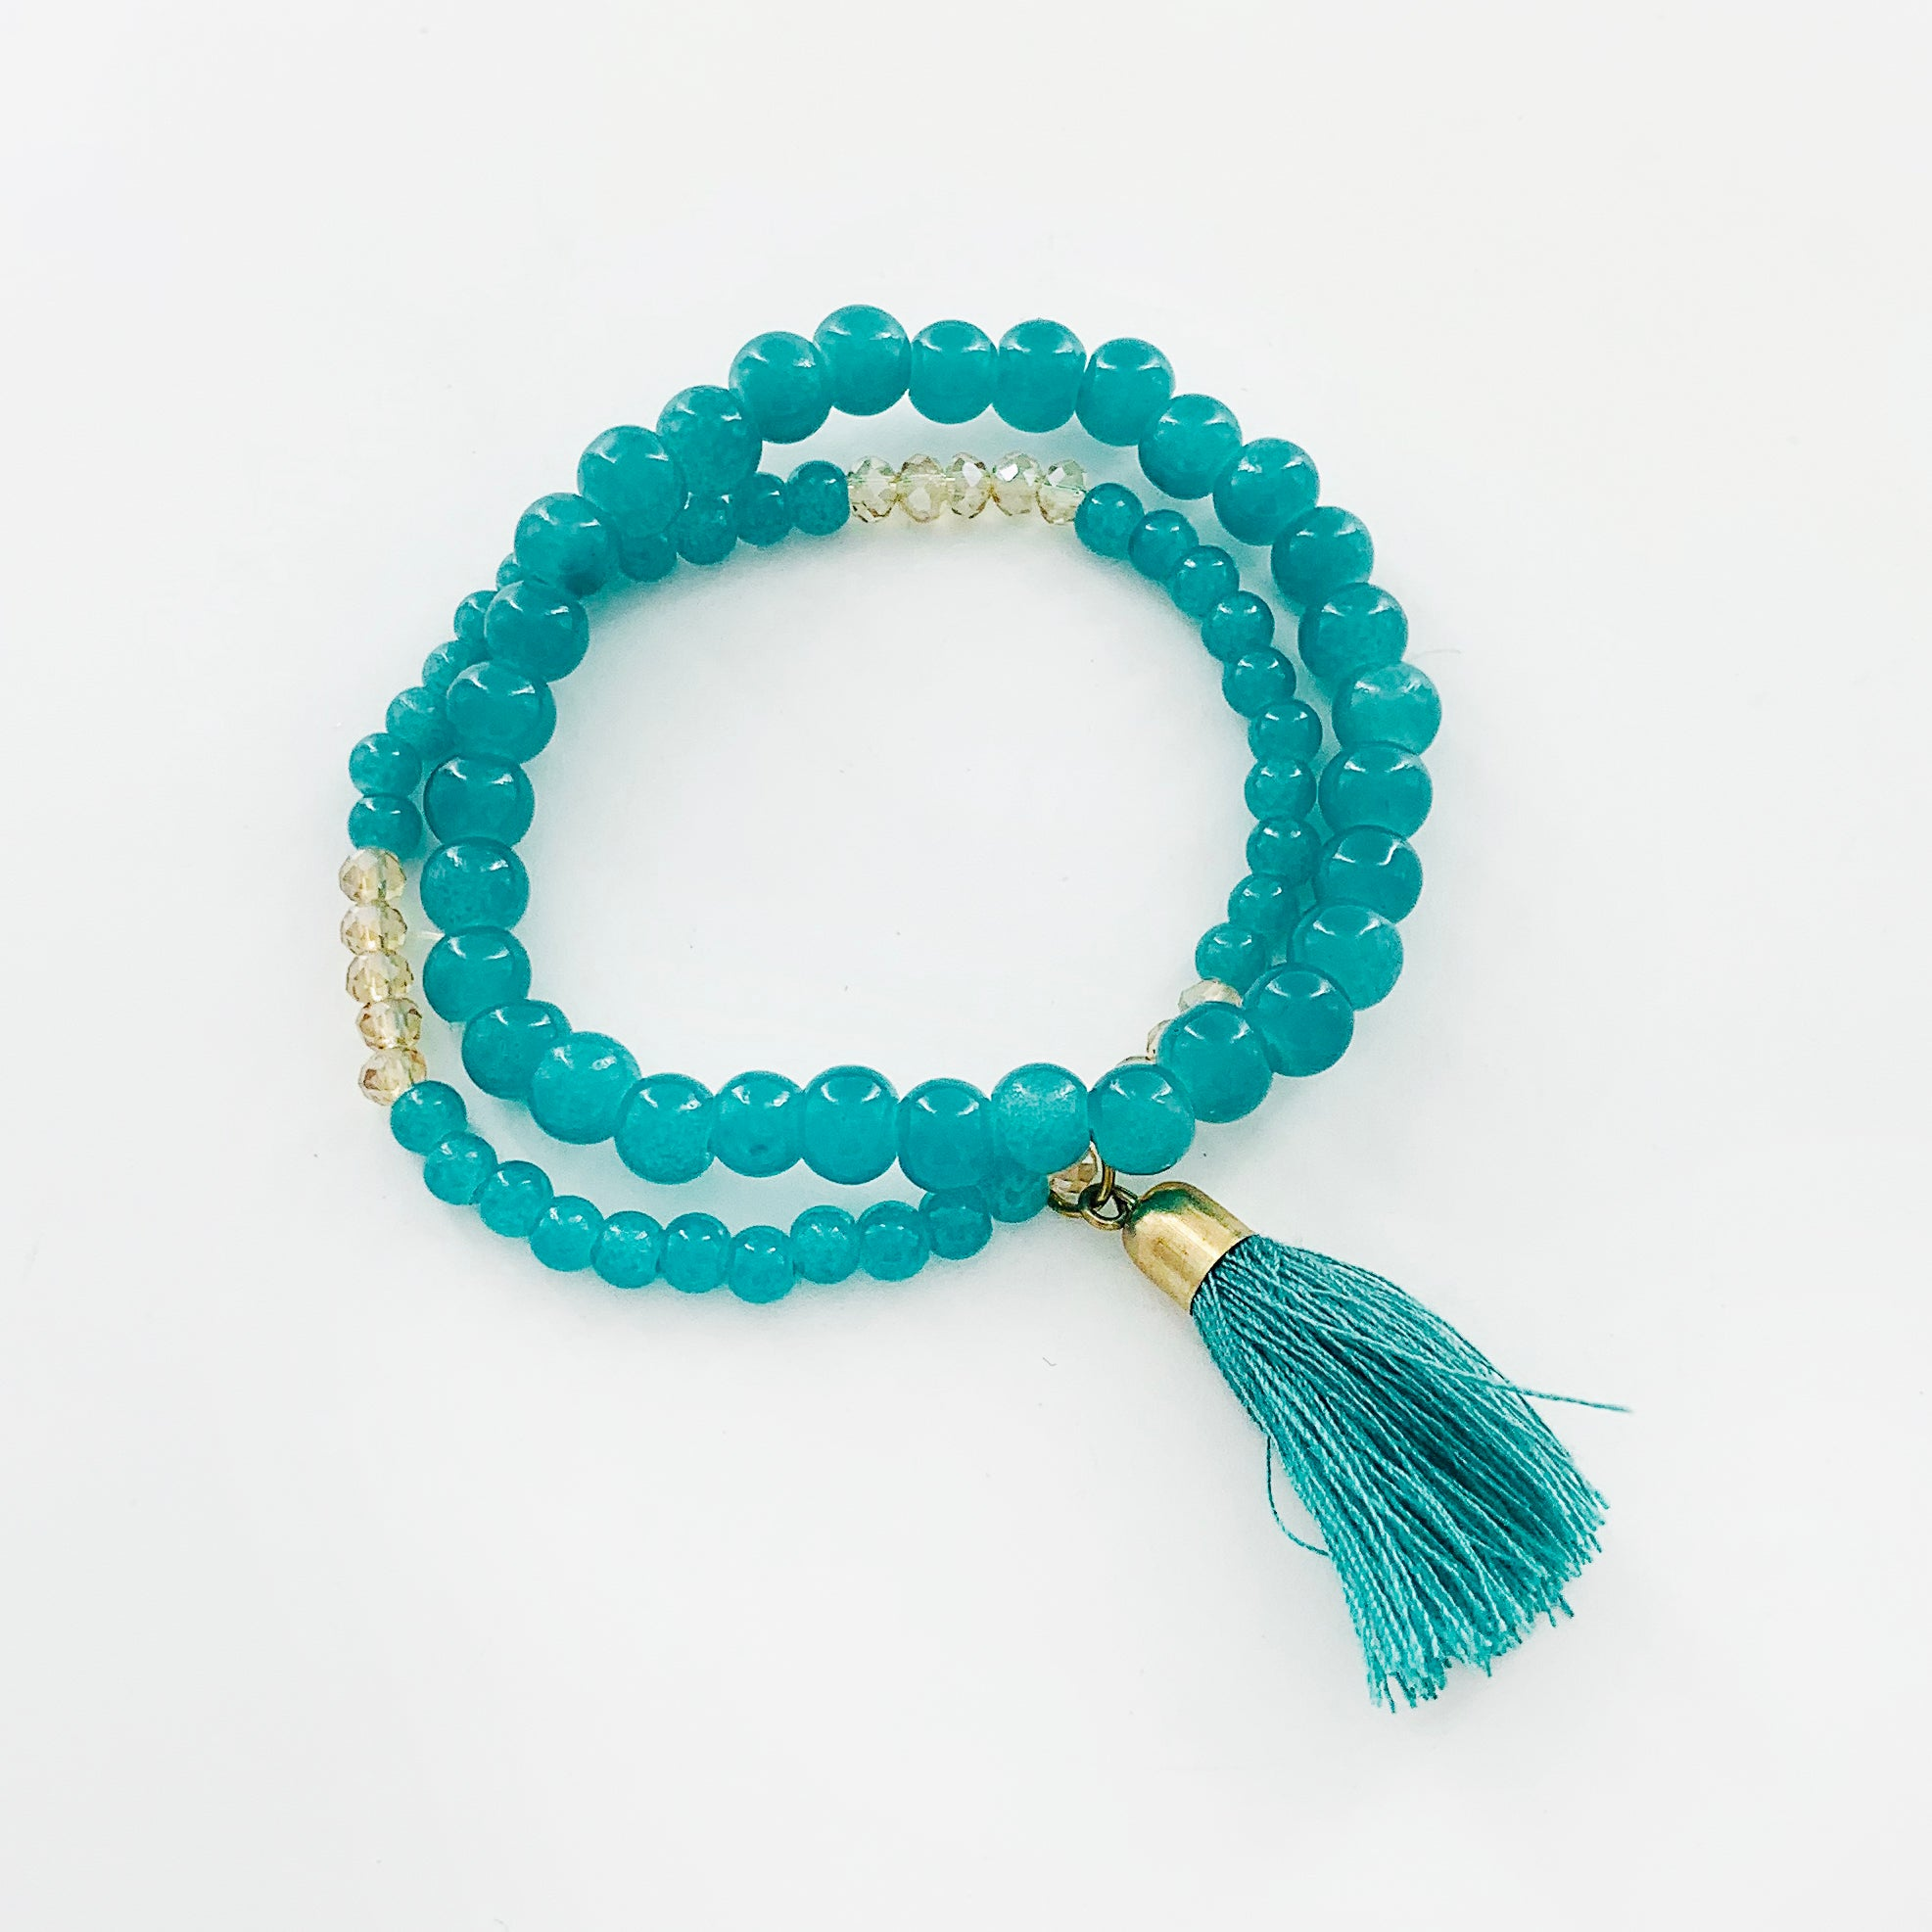 Turquoise beaded bracelets with tassel charm